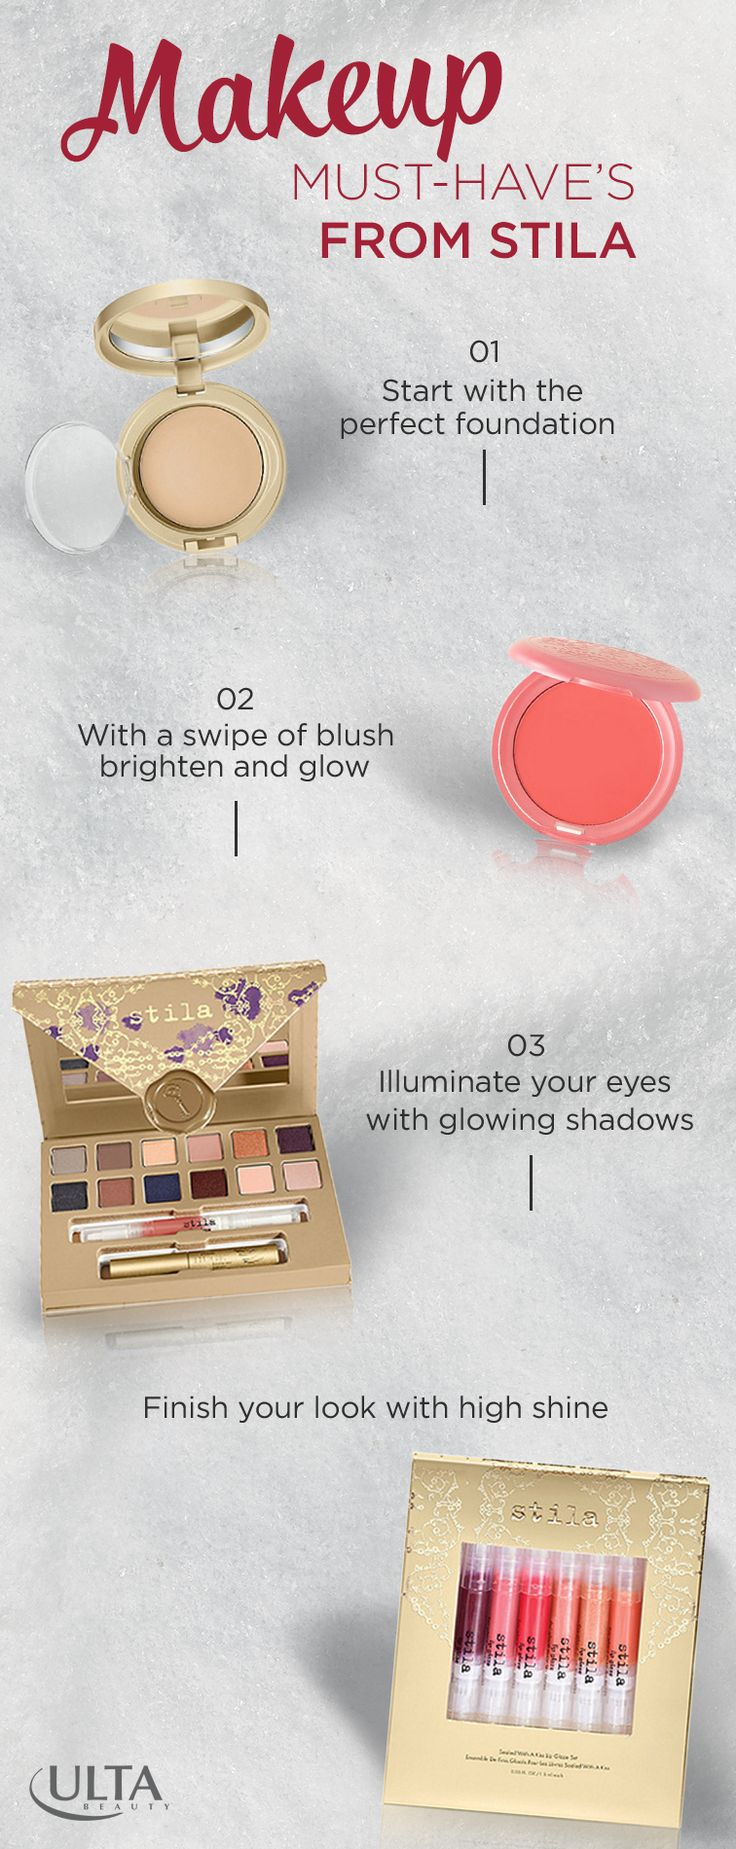 Whether it's a holiday dinner or a new year's party, shine and shimmer this season with Stila's collection of gift sets. Get a holiday look worthy of turning heads with Stila's lip gloss, Perfectly Poreless Putty Perfector, Convertible Blush-In-One, Eyeshadow Palette and more. Find your must-have Stila style this holiday, only at Ulta Beauty.